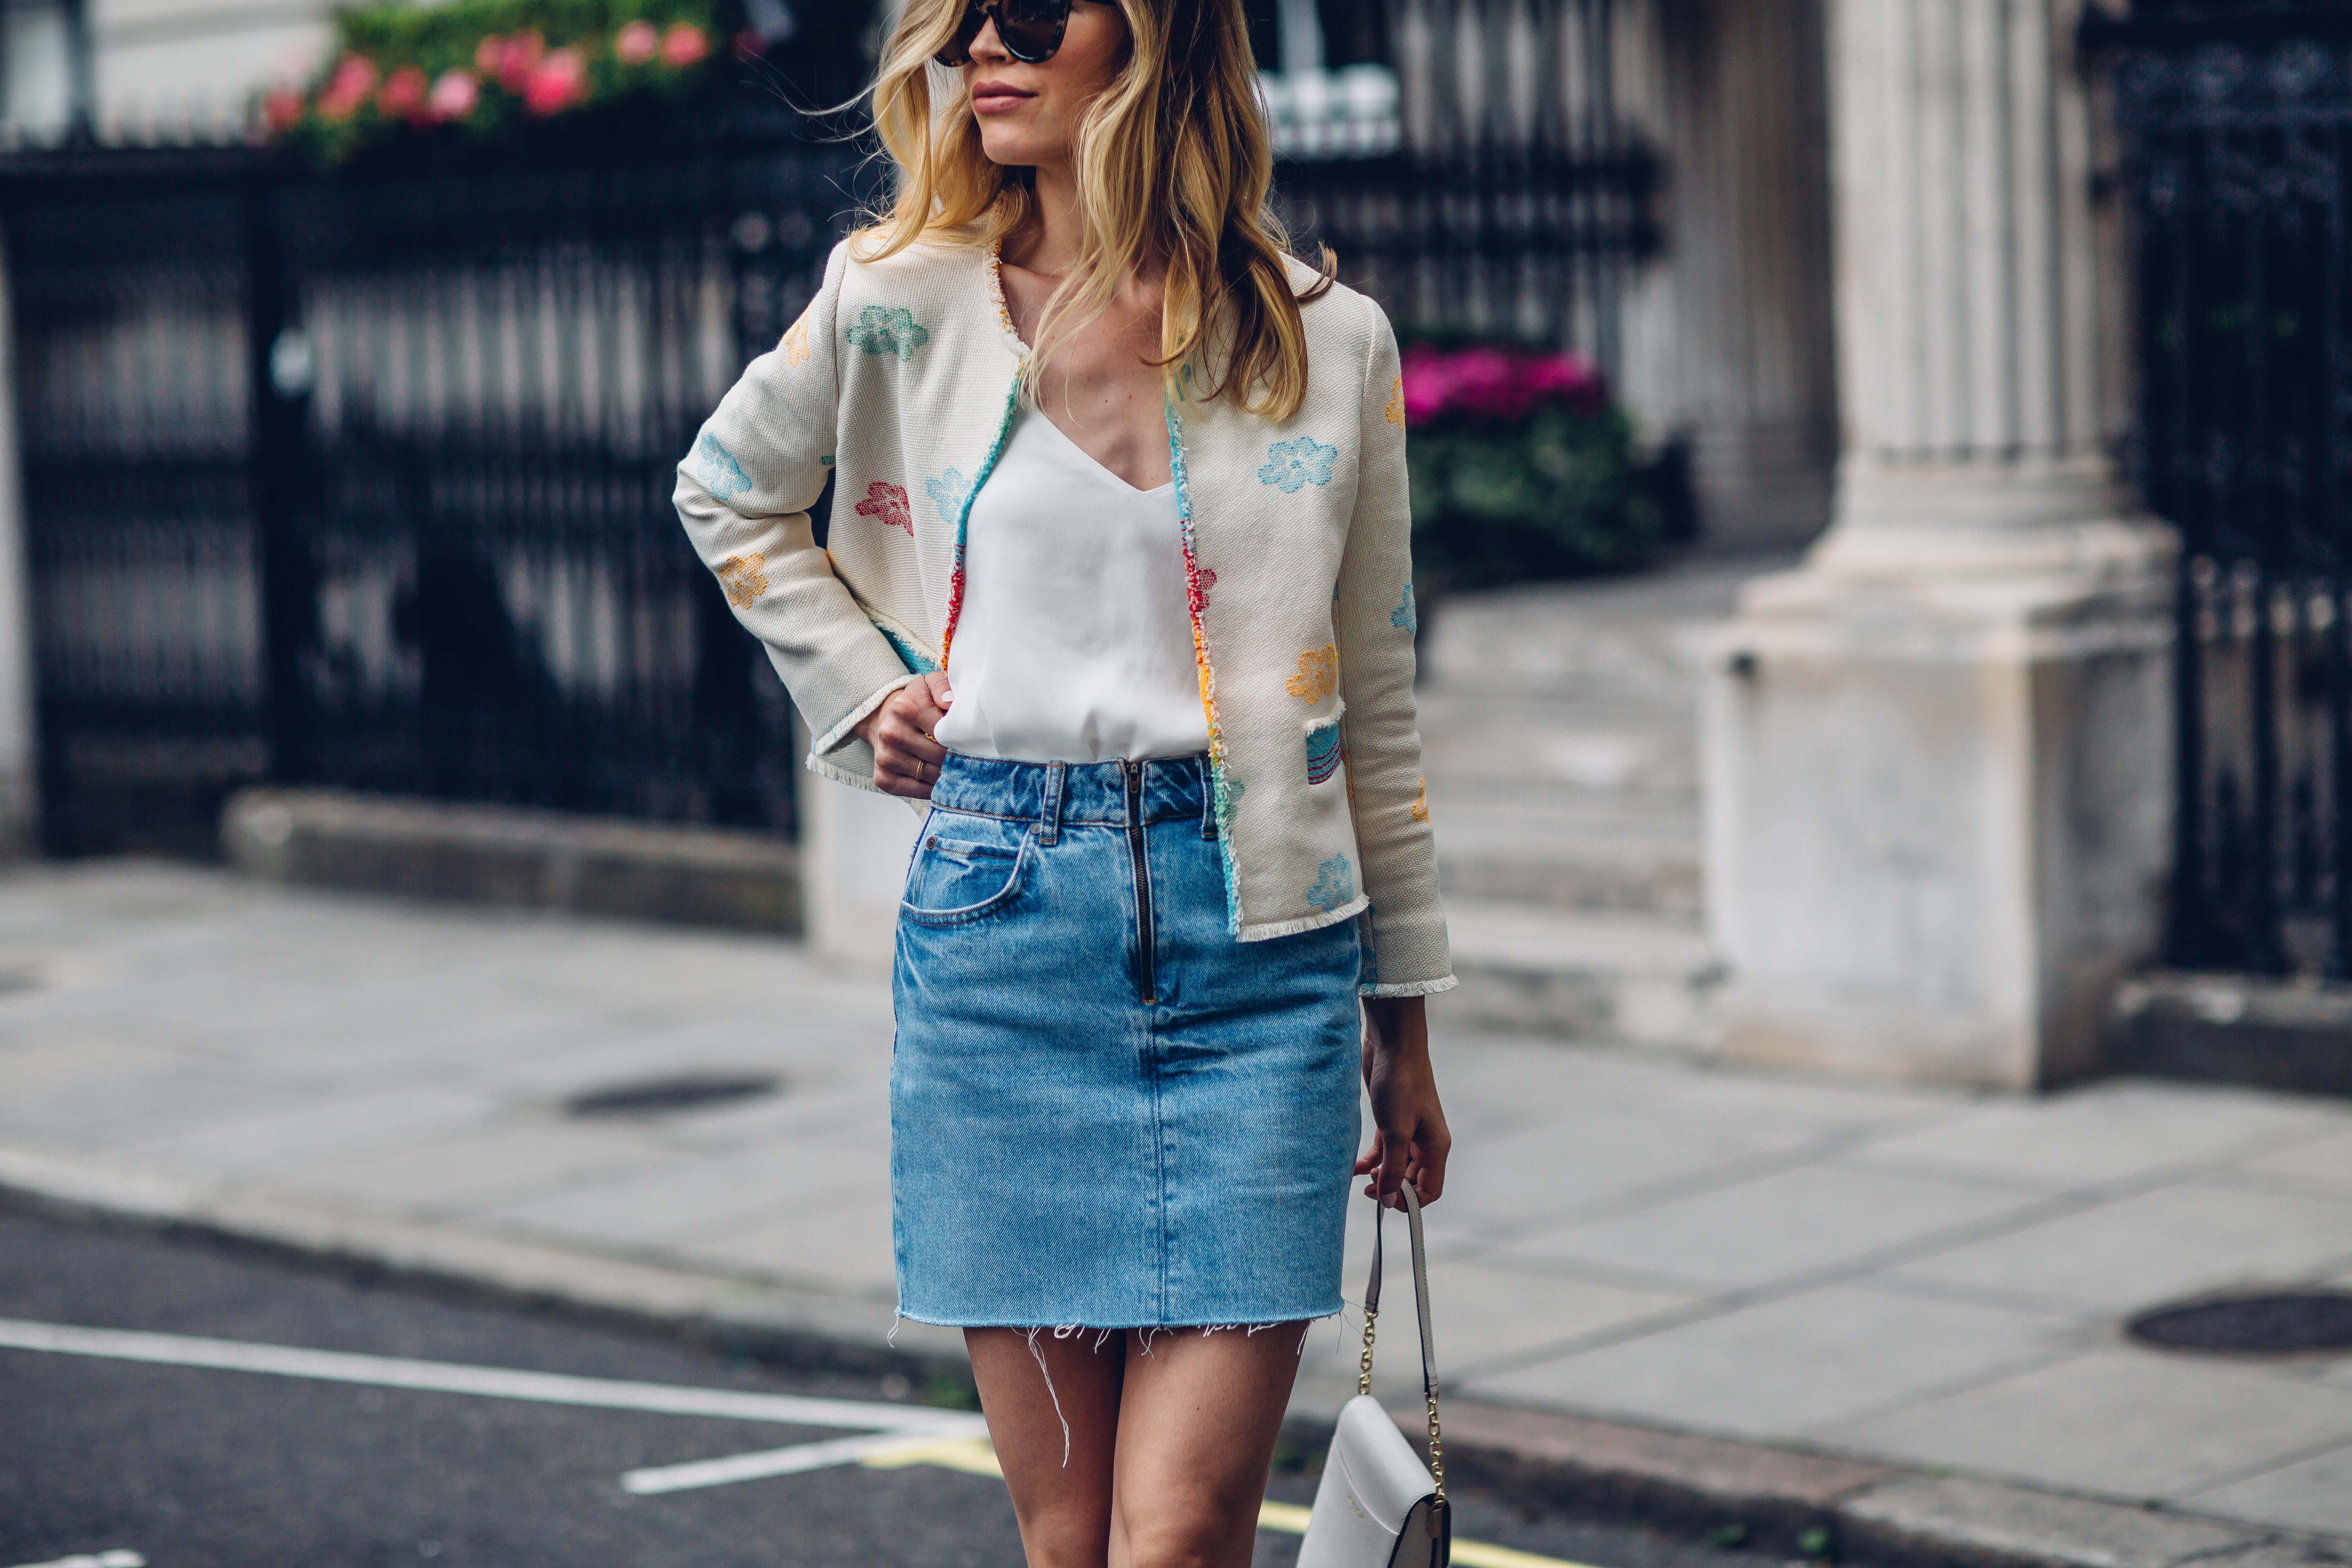 london blogger, ellie mae